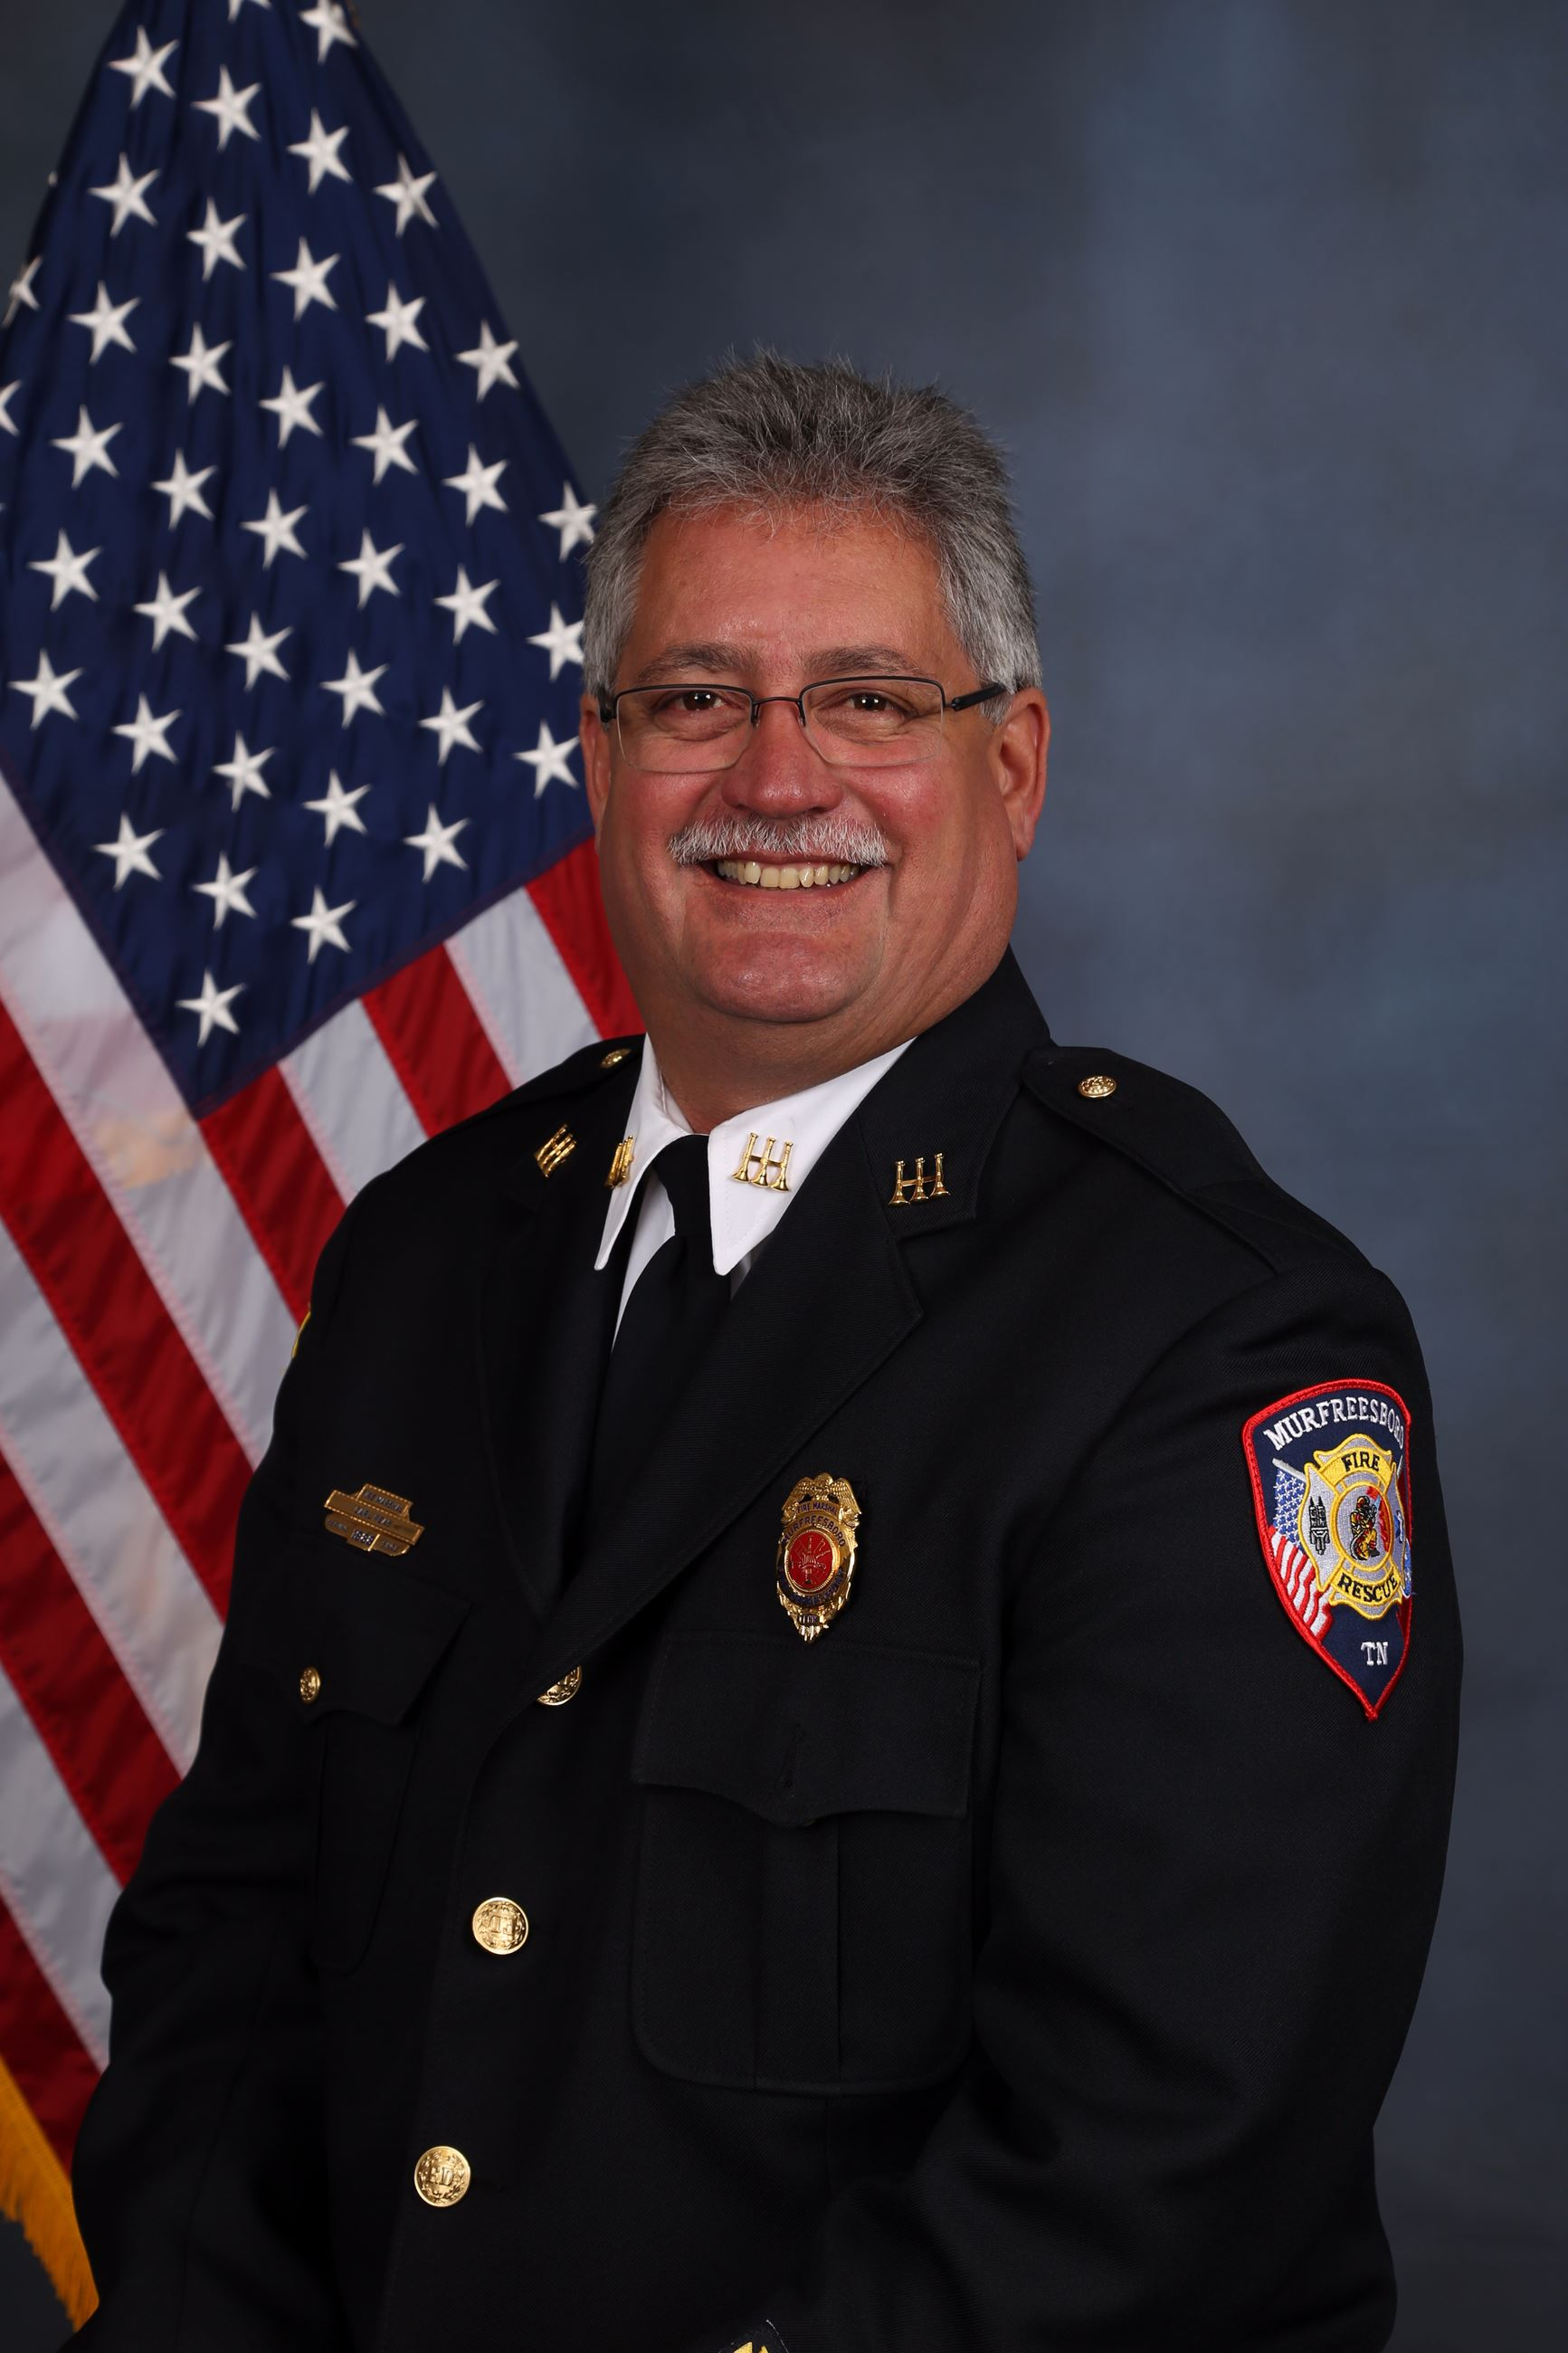 MFRD ASSISTANT CHIEF  CARL PEAS